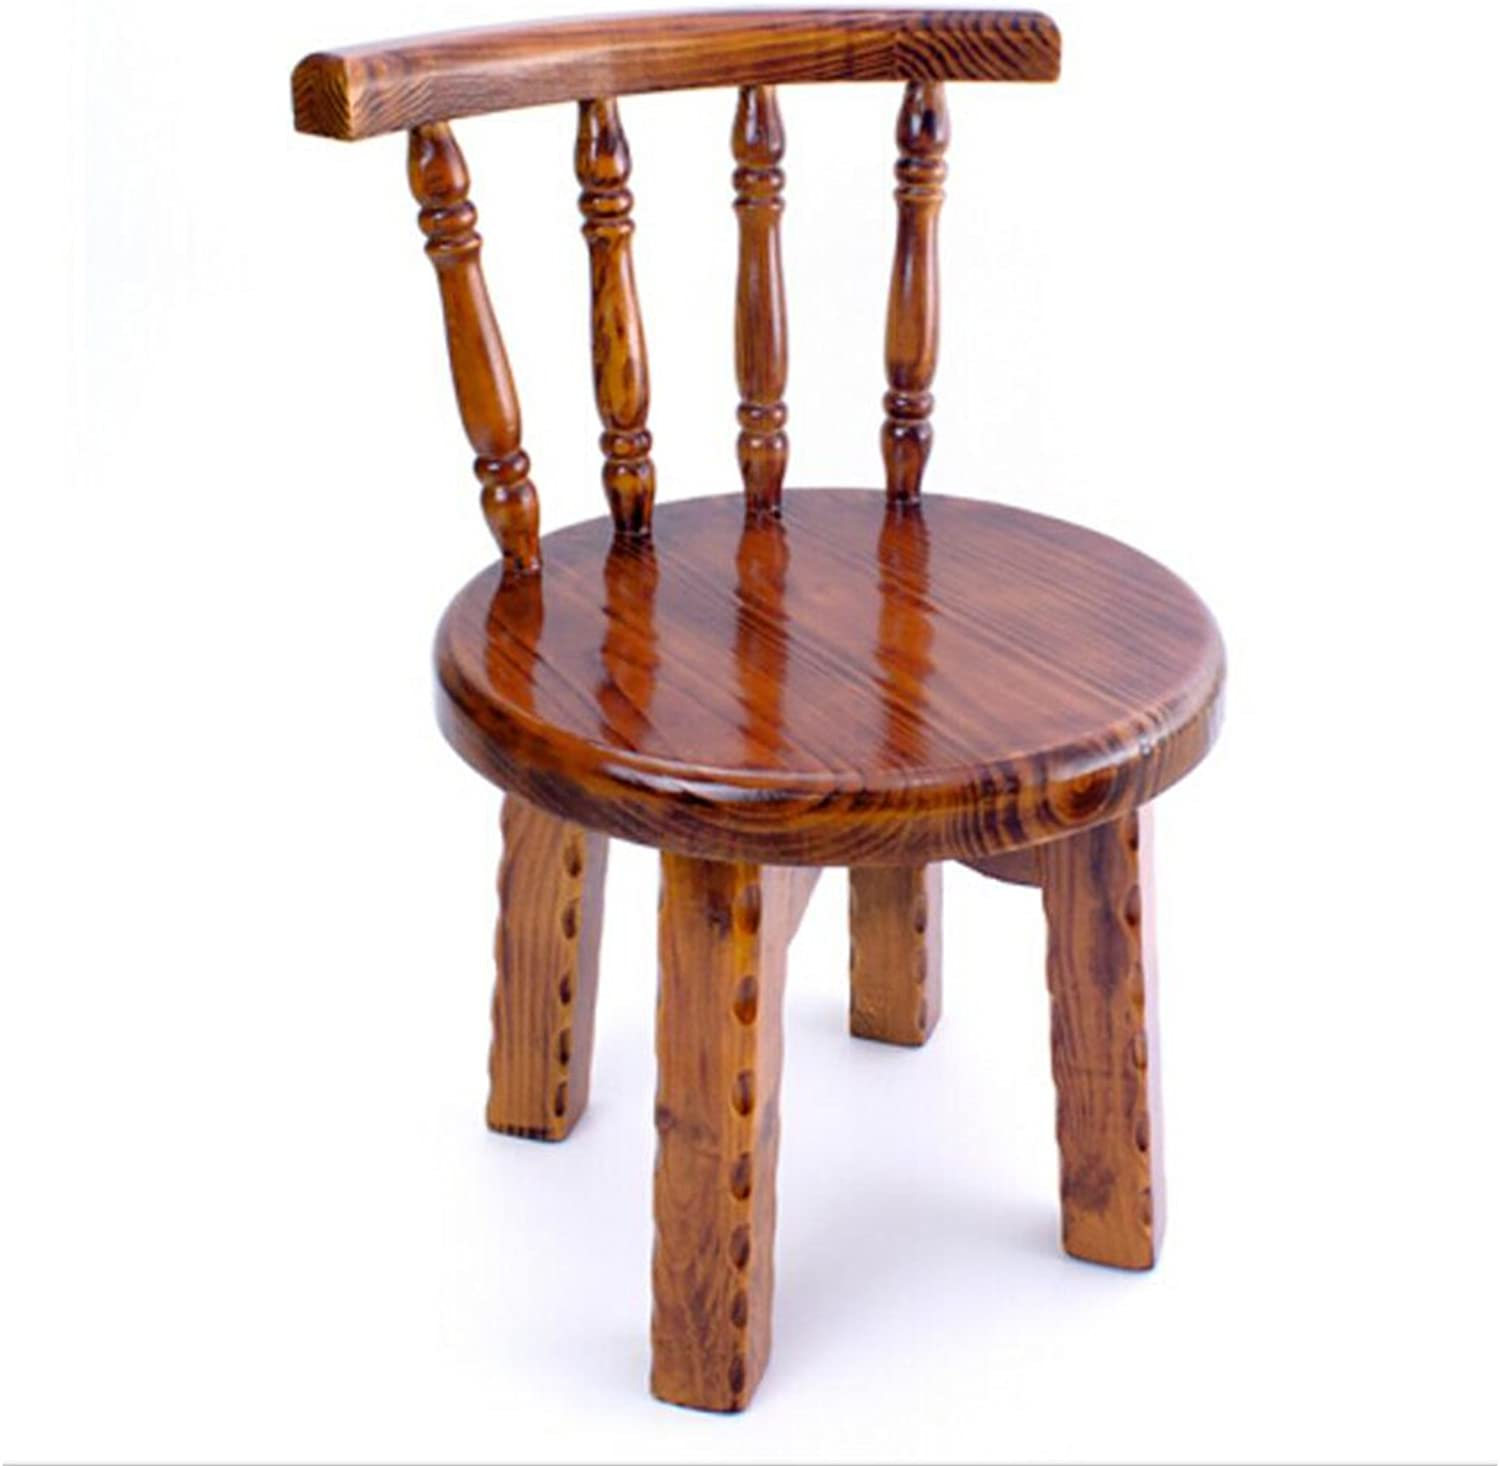 A-Fort Stylish Small Stool Small Wooden Stool backrest Solid Wood Stool Chair Household Stool Simple Low Stool Solid Wood redating Stool (color   Brown)